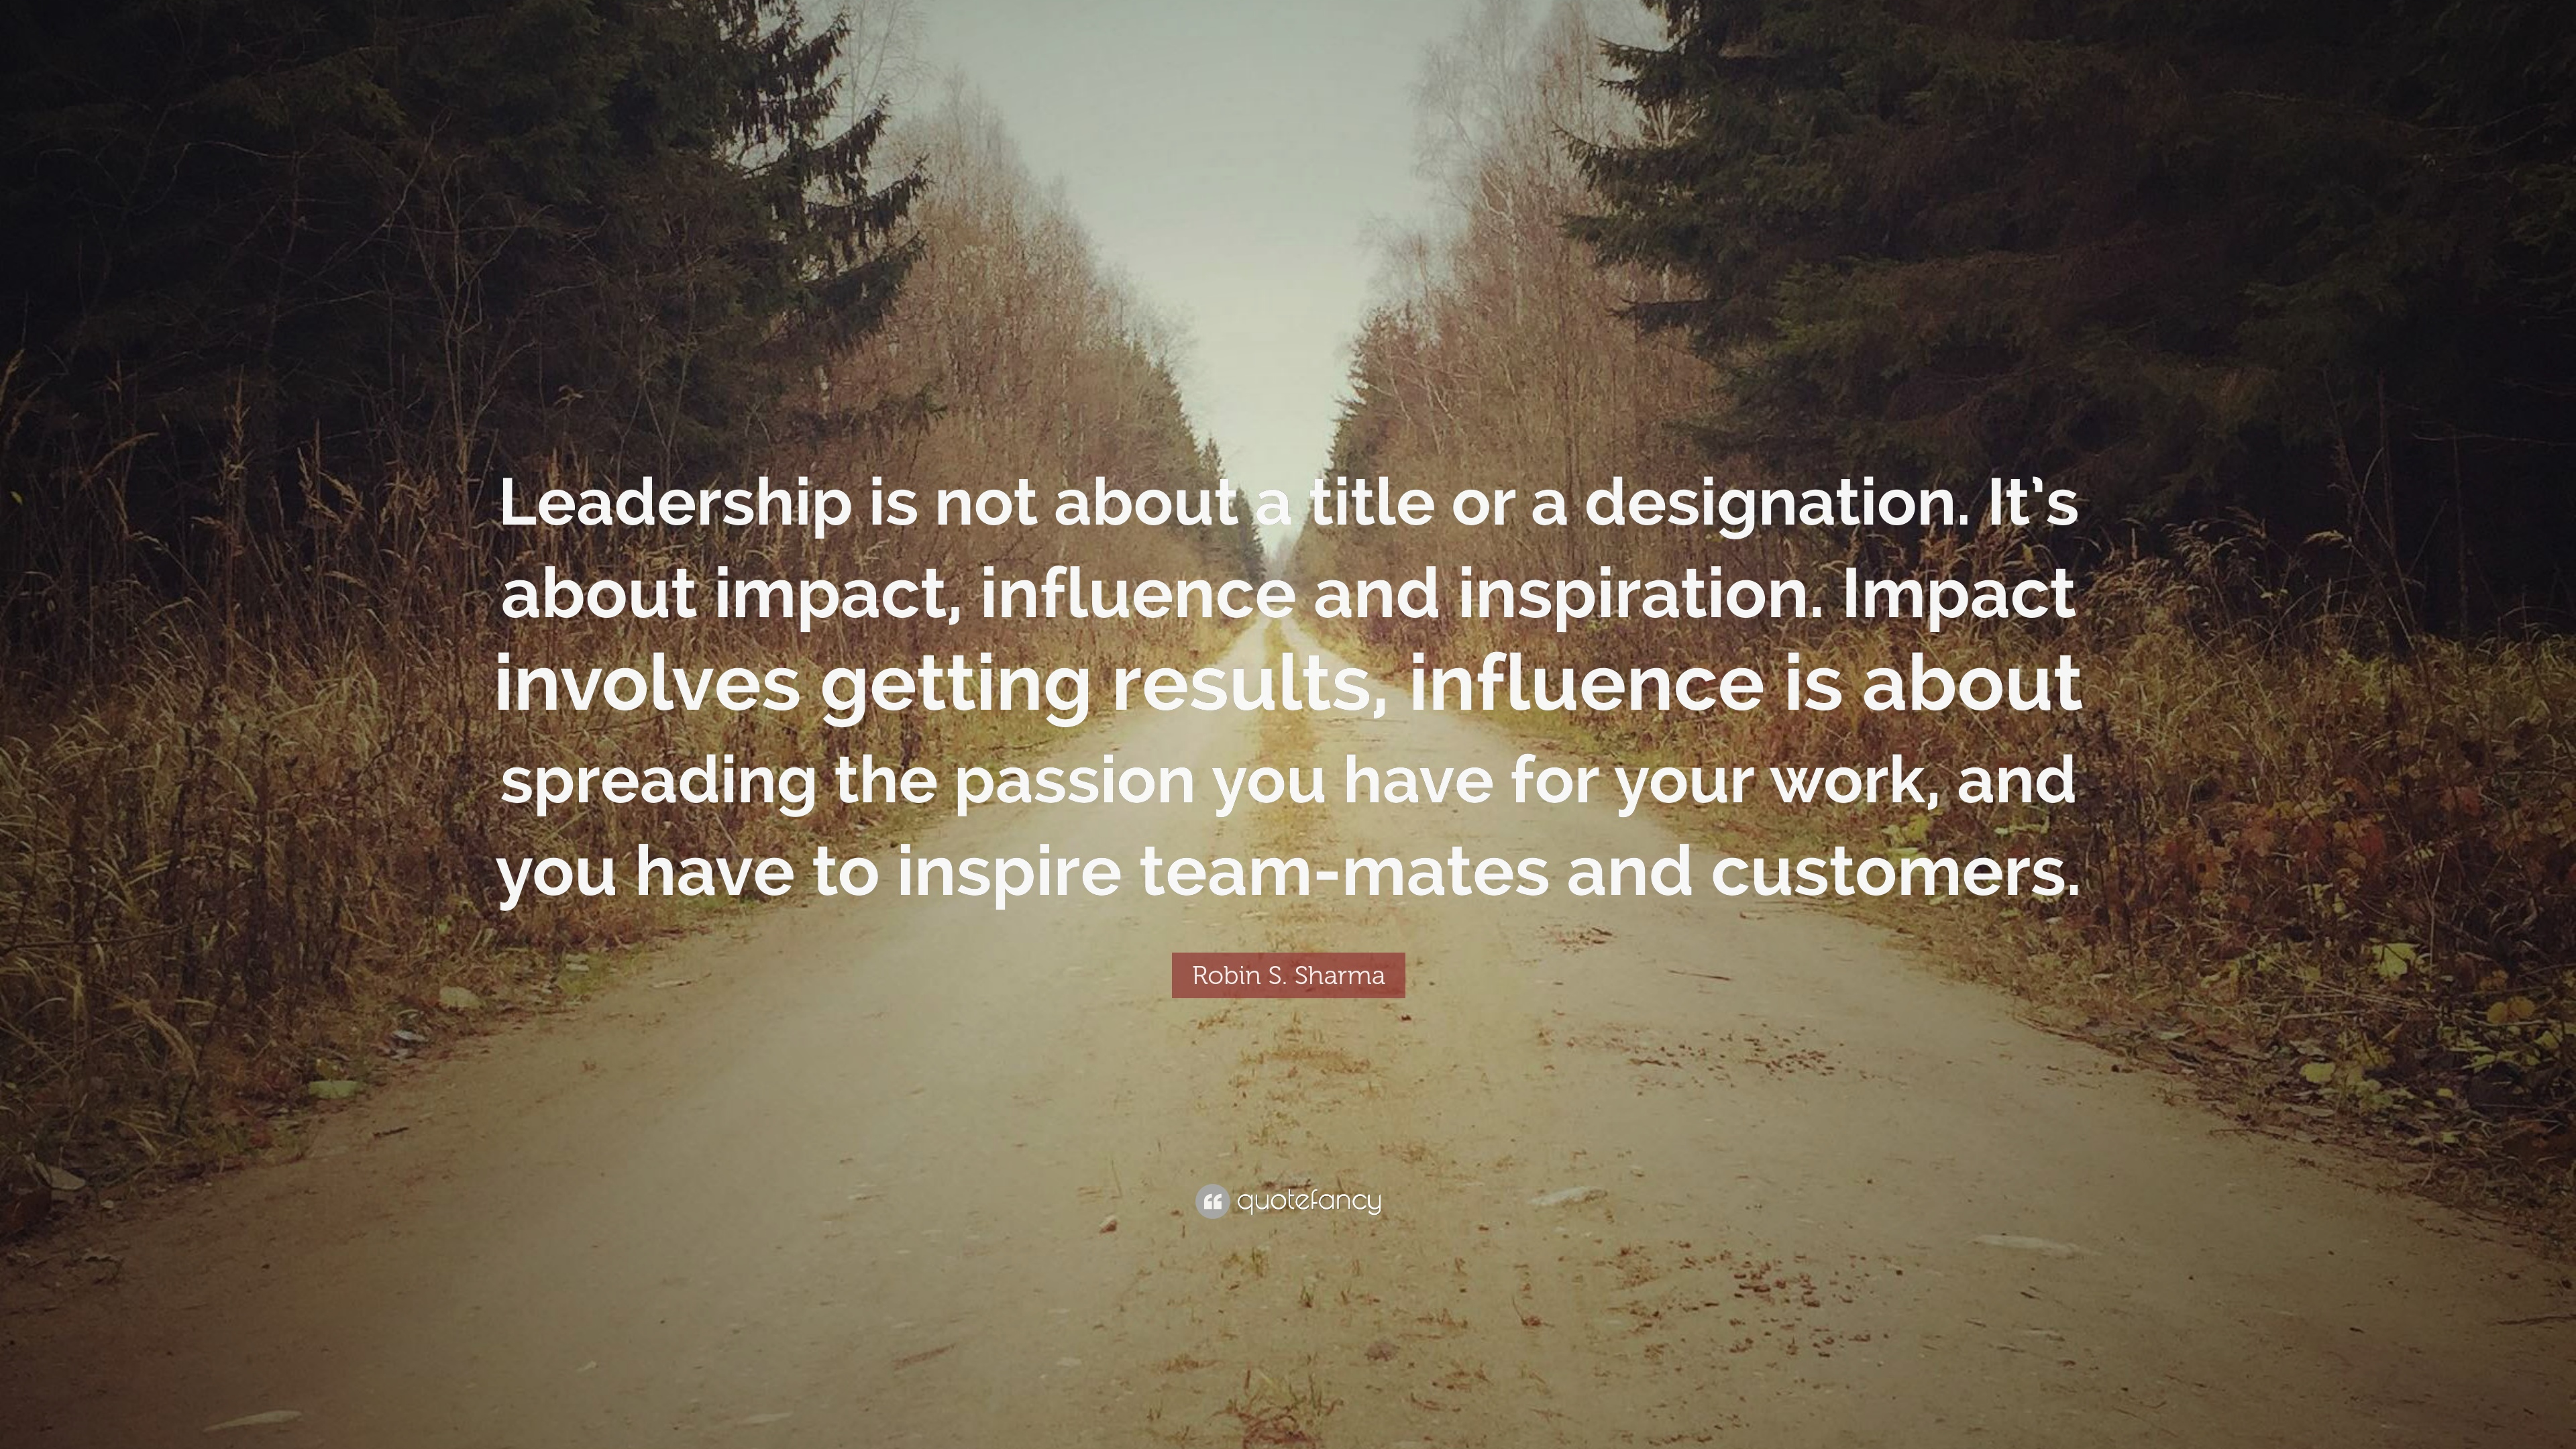 Robin S Sharma Quote Leadership Is Not About A Title Or A